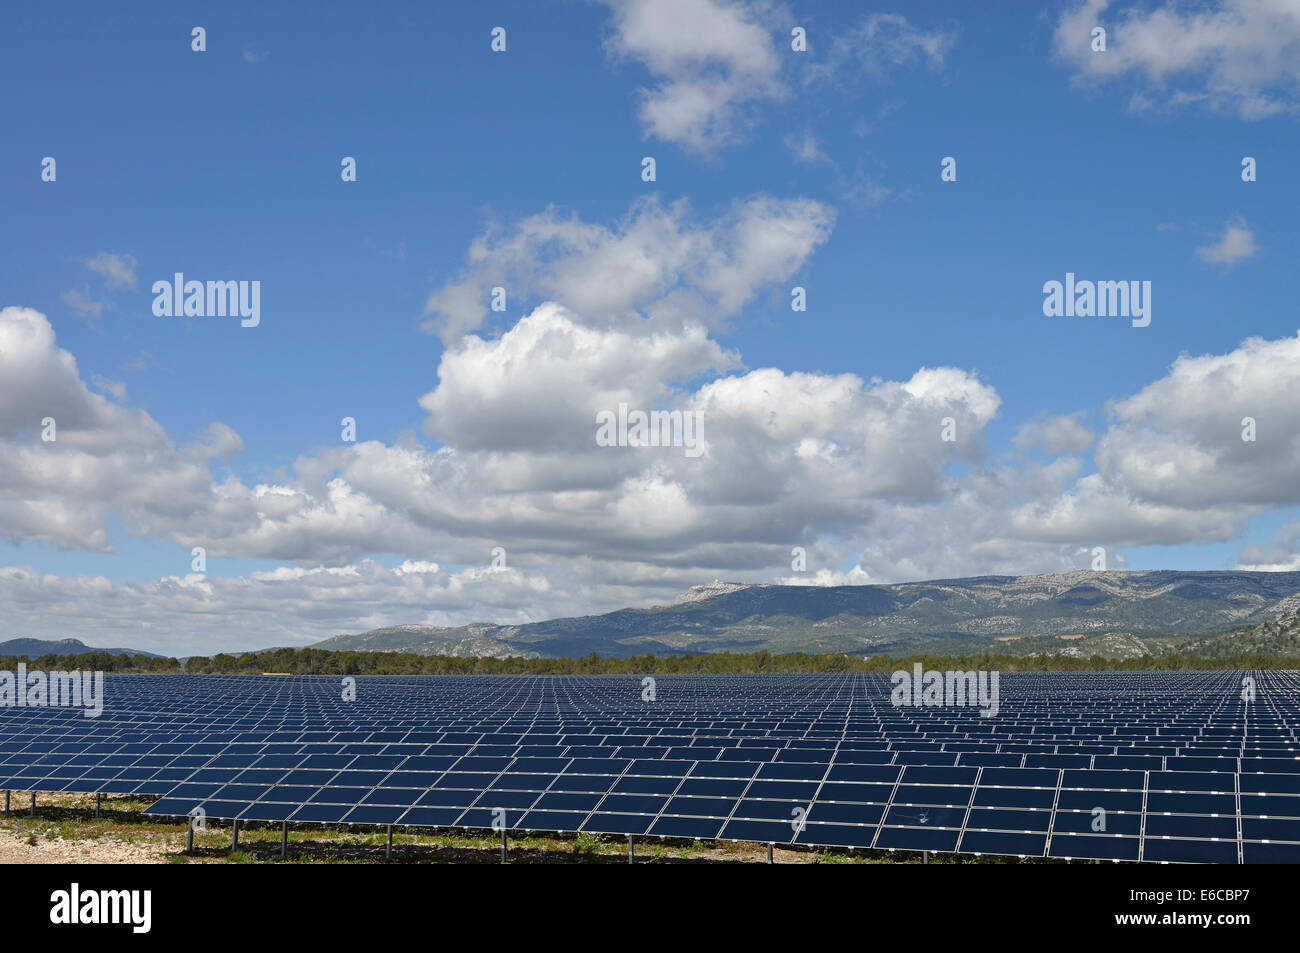 Large renewable energy solar panel array at a solar farm in the countryside - Stock Image